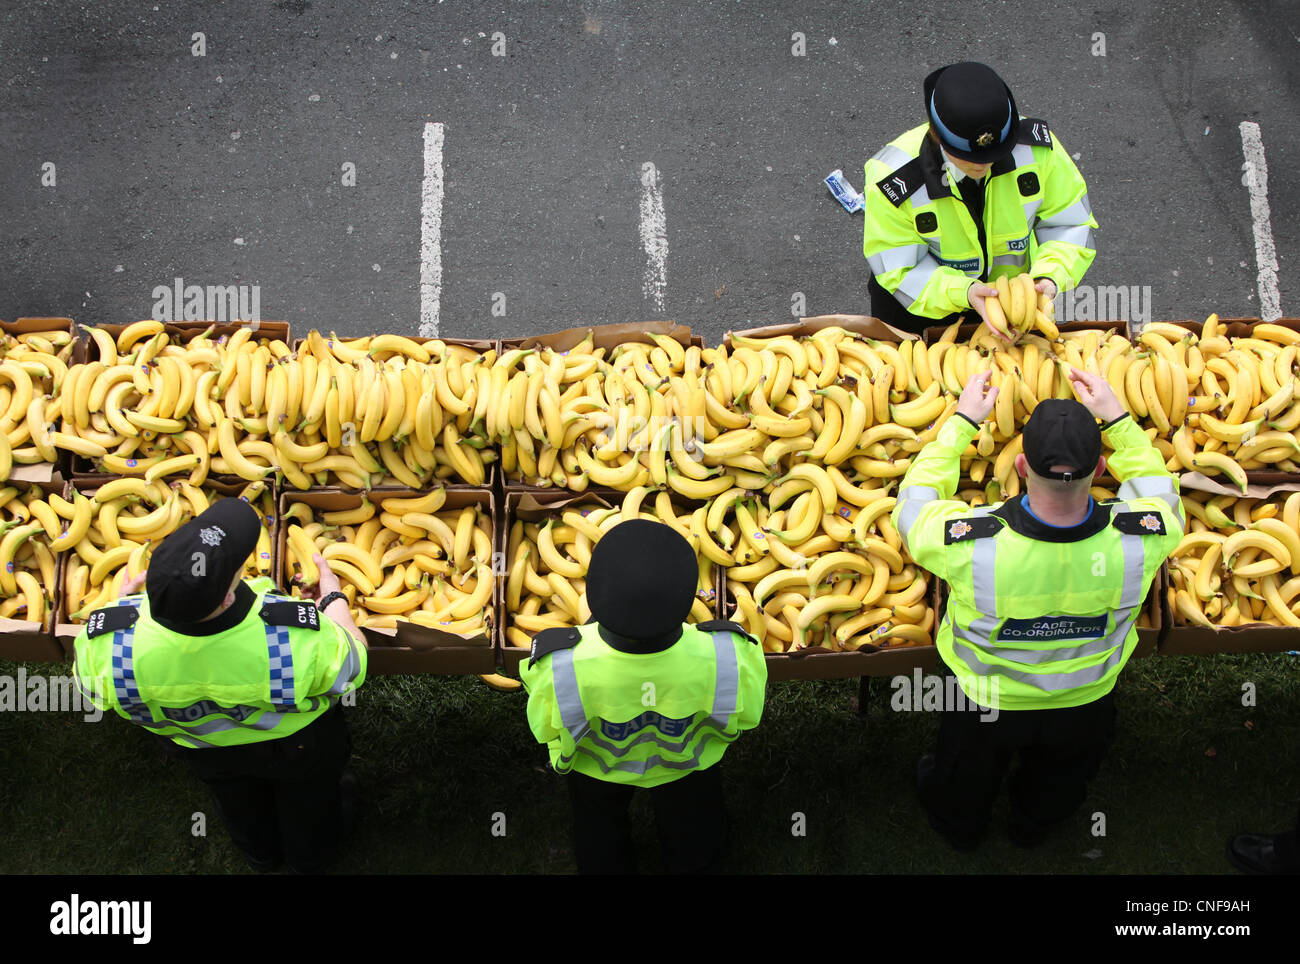 Police and cadets hand out bananas to runners at the finish line of the Brighton marathon 2012. Picture by James - Stock Image